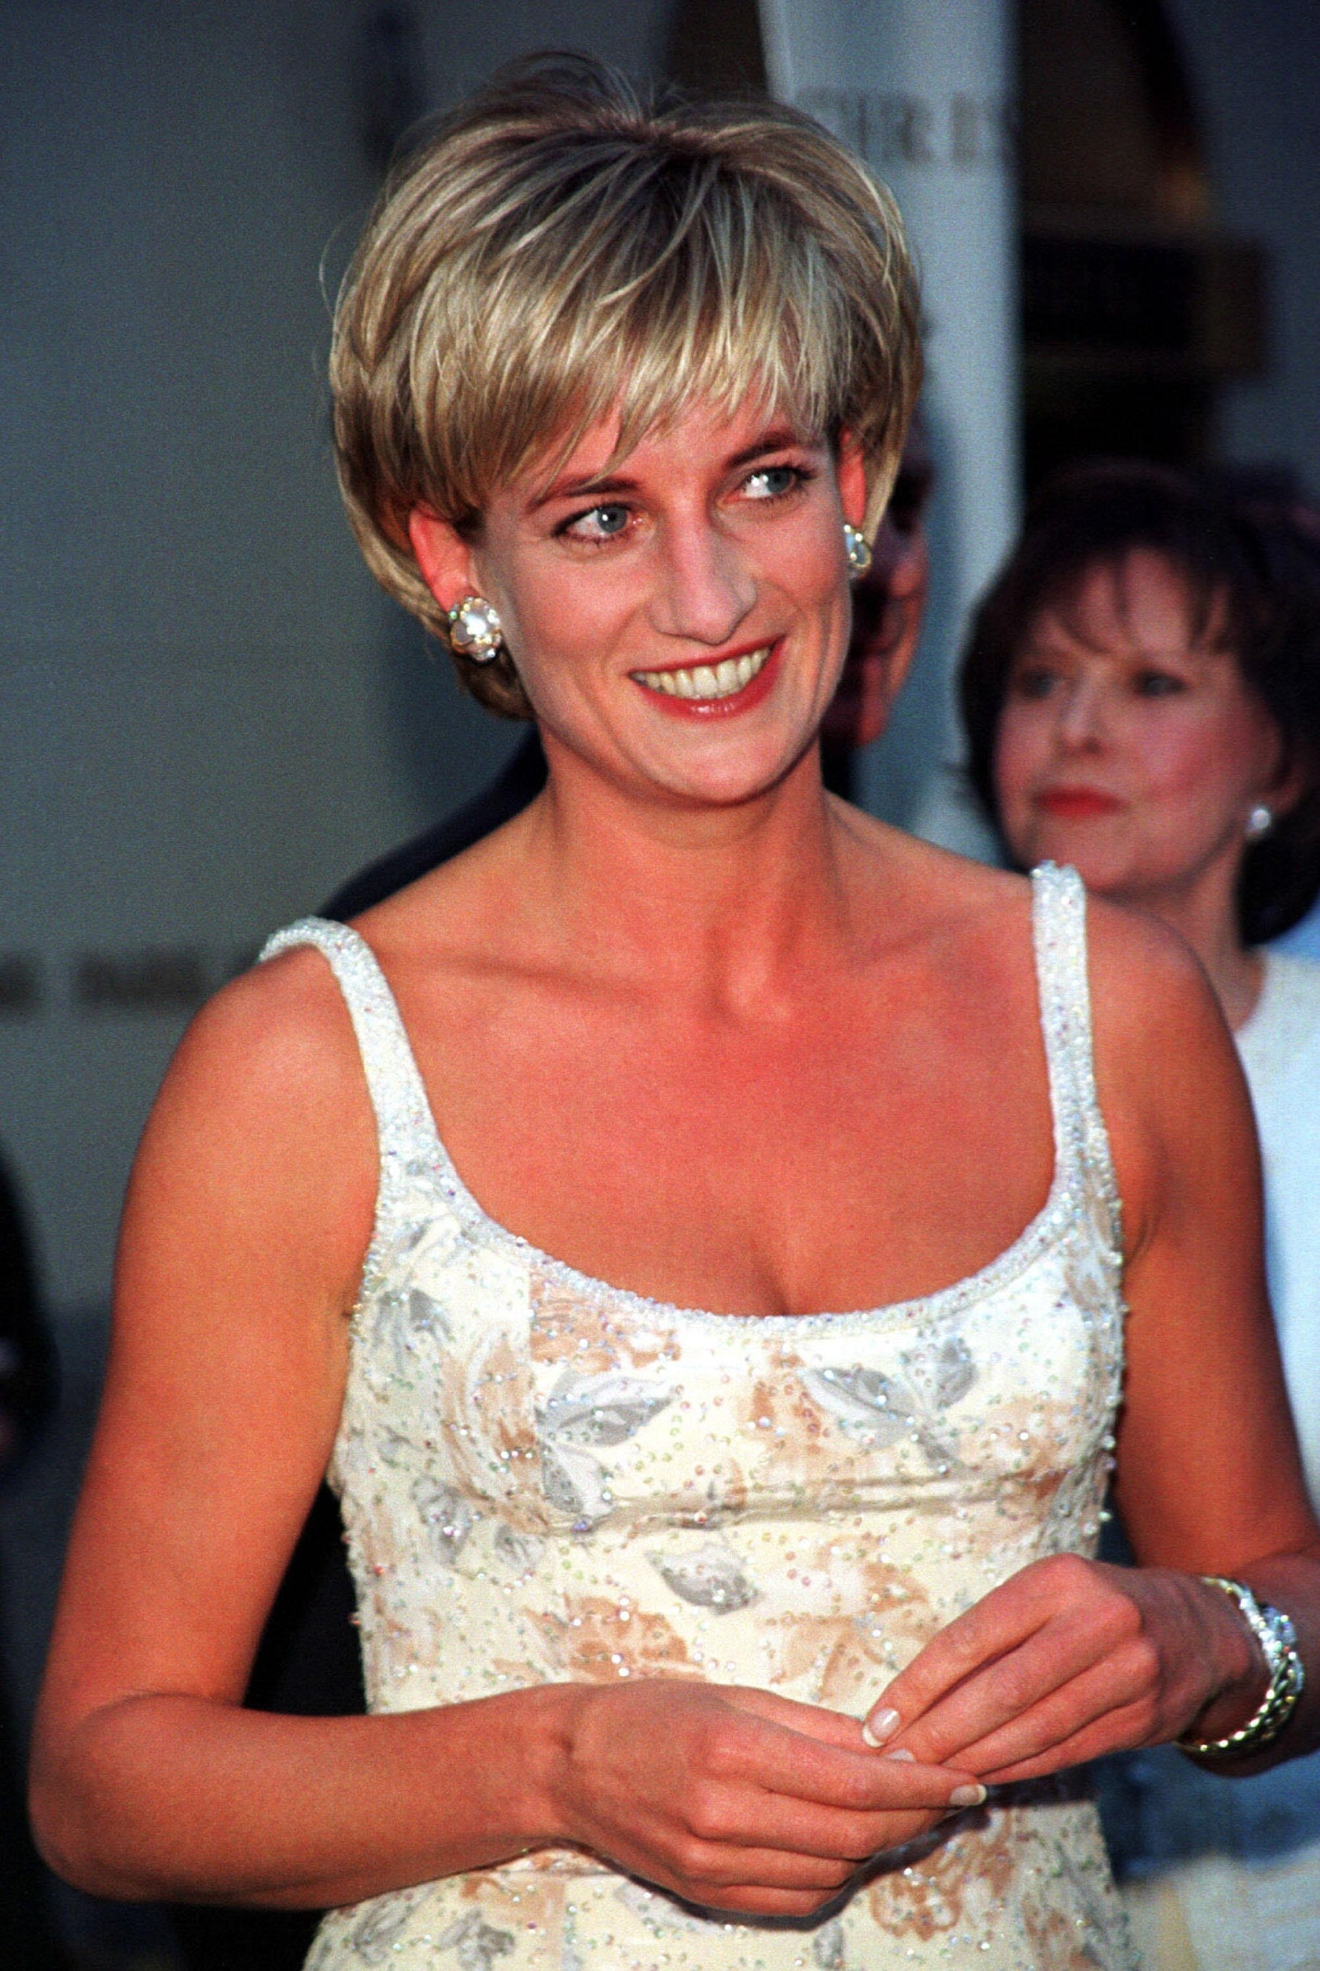 GALLERY | Remembering Princess Diana, 19 years after her death | WJLA